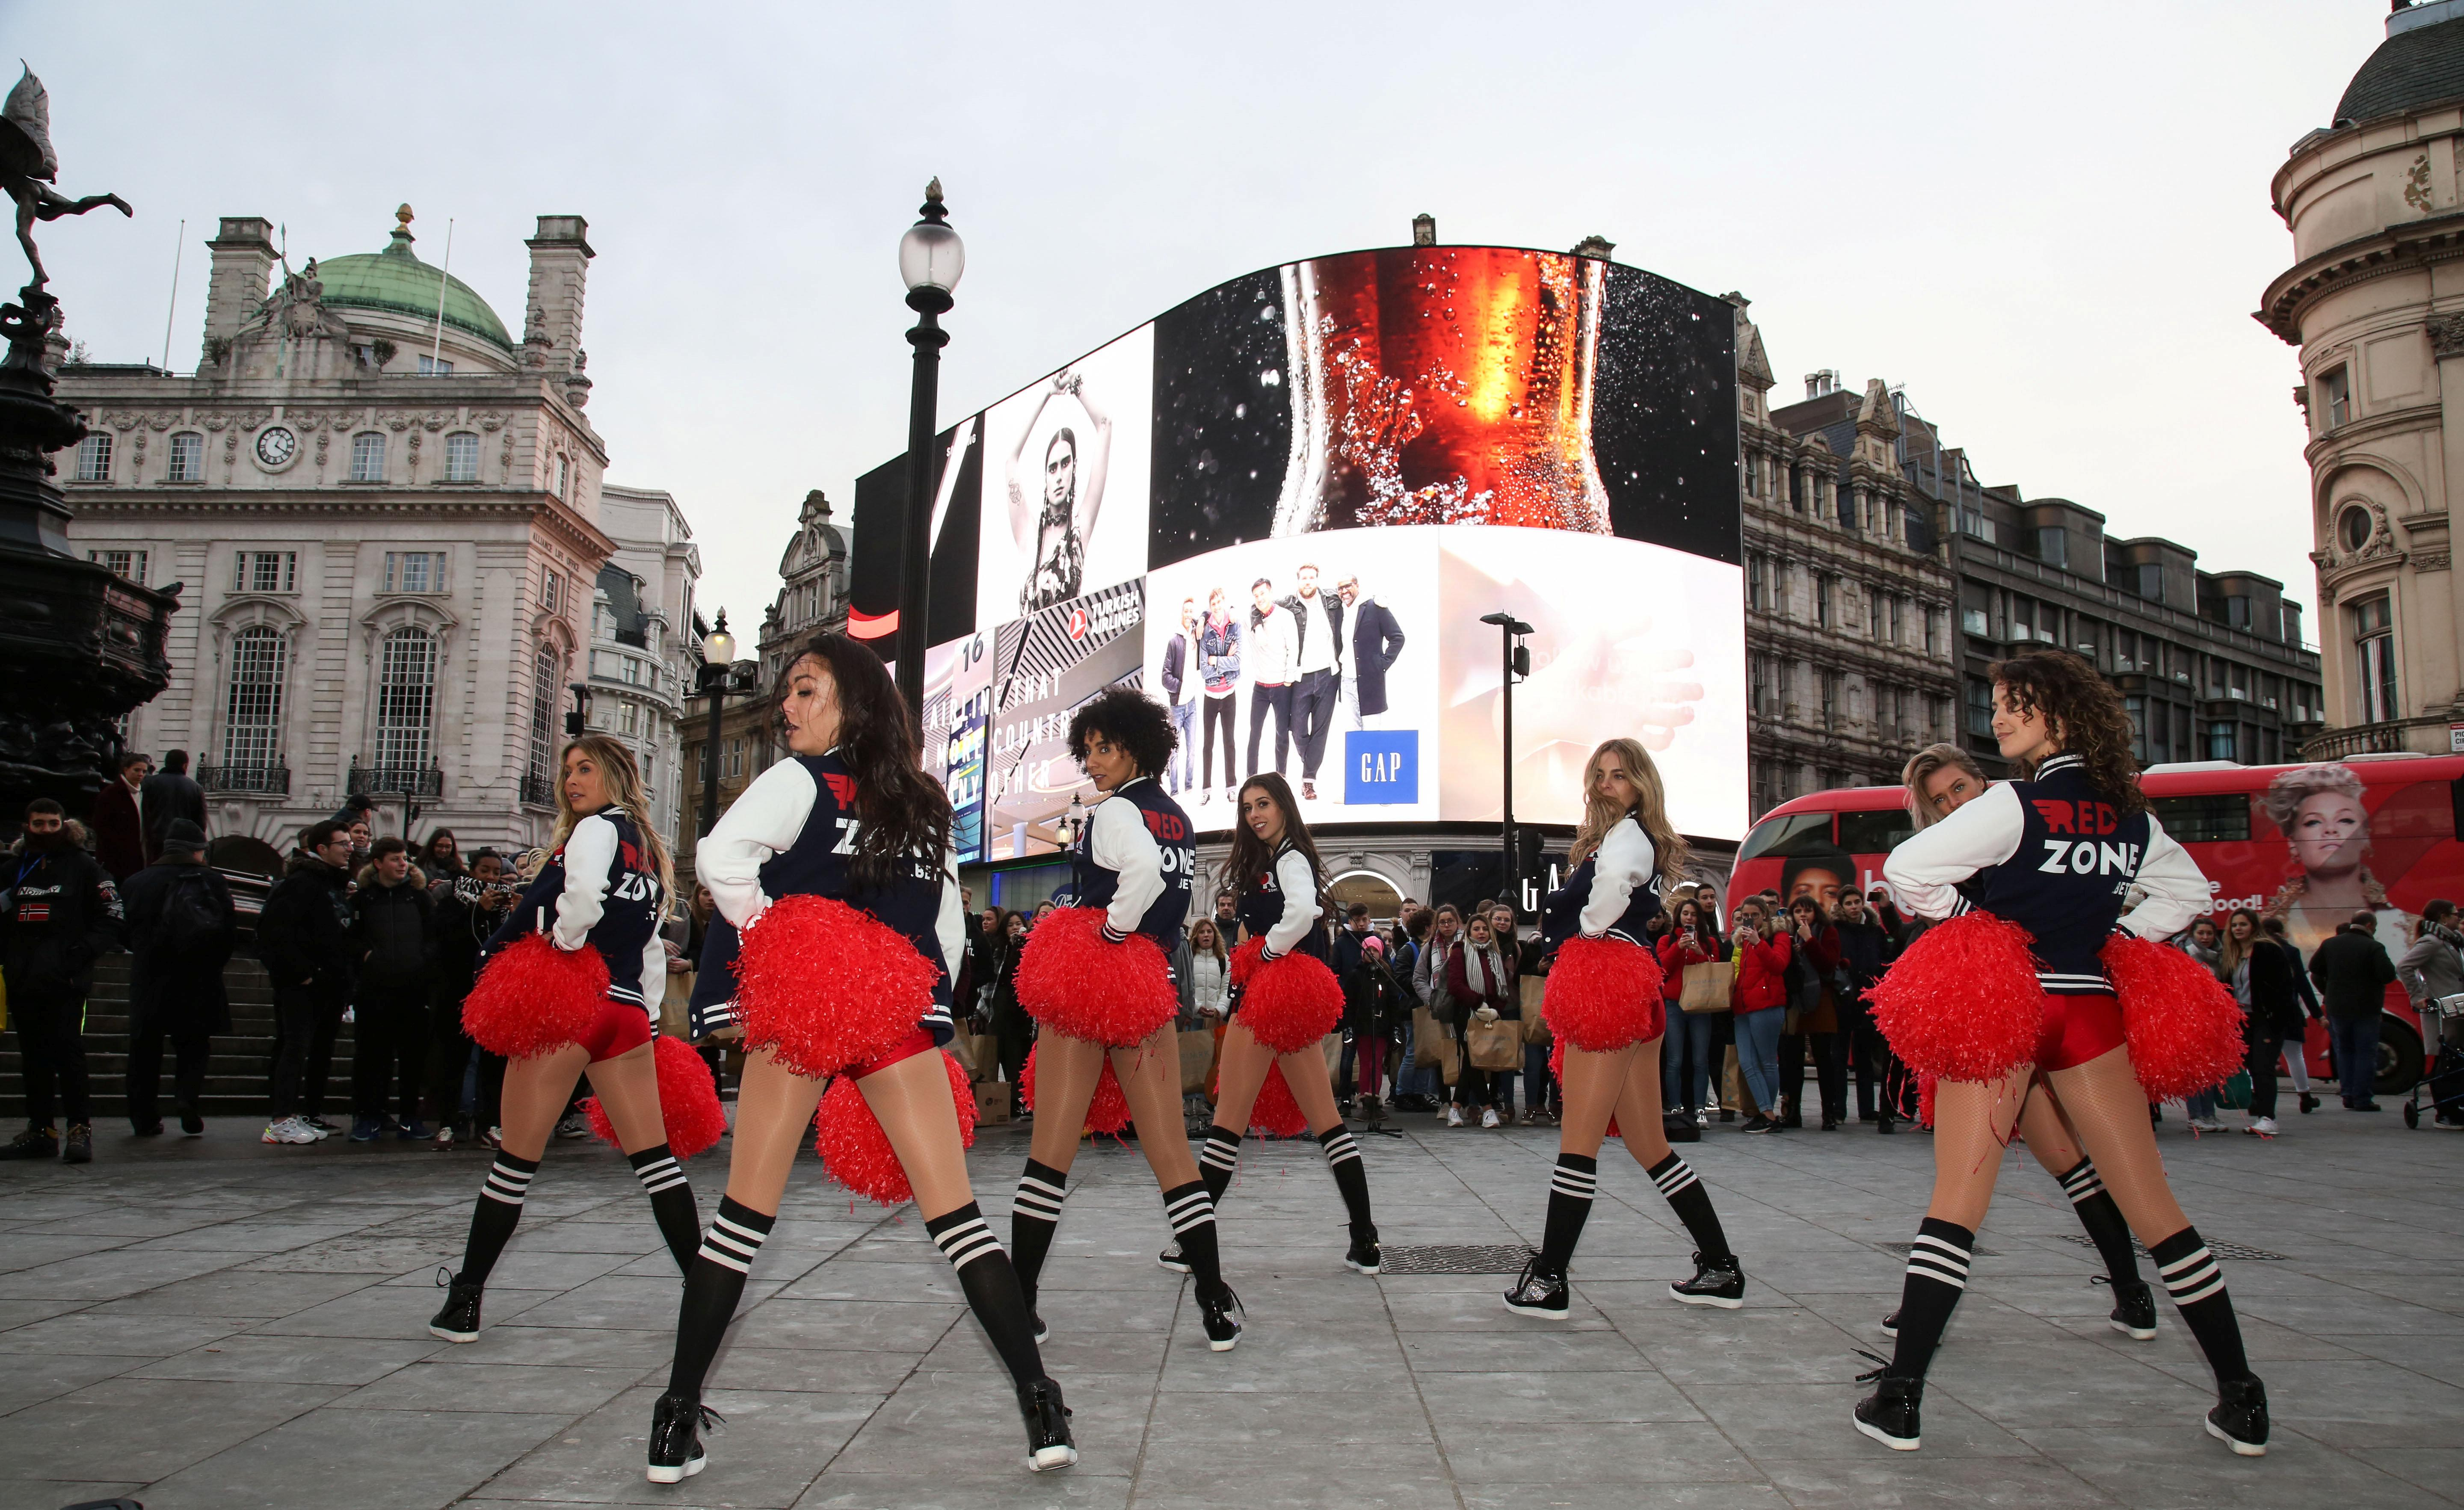 Cheerleaders draw crowds in central London as they perform